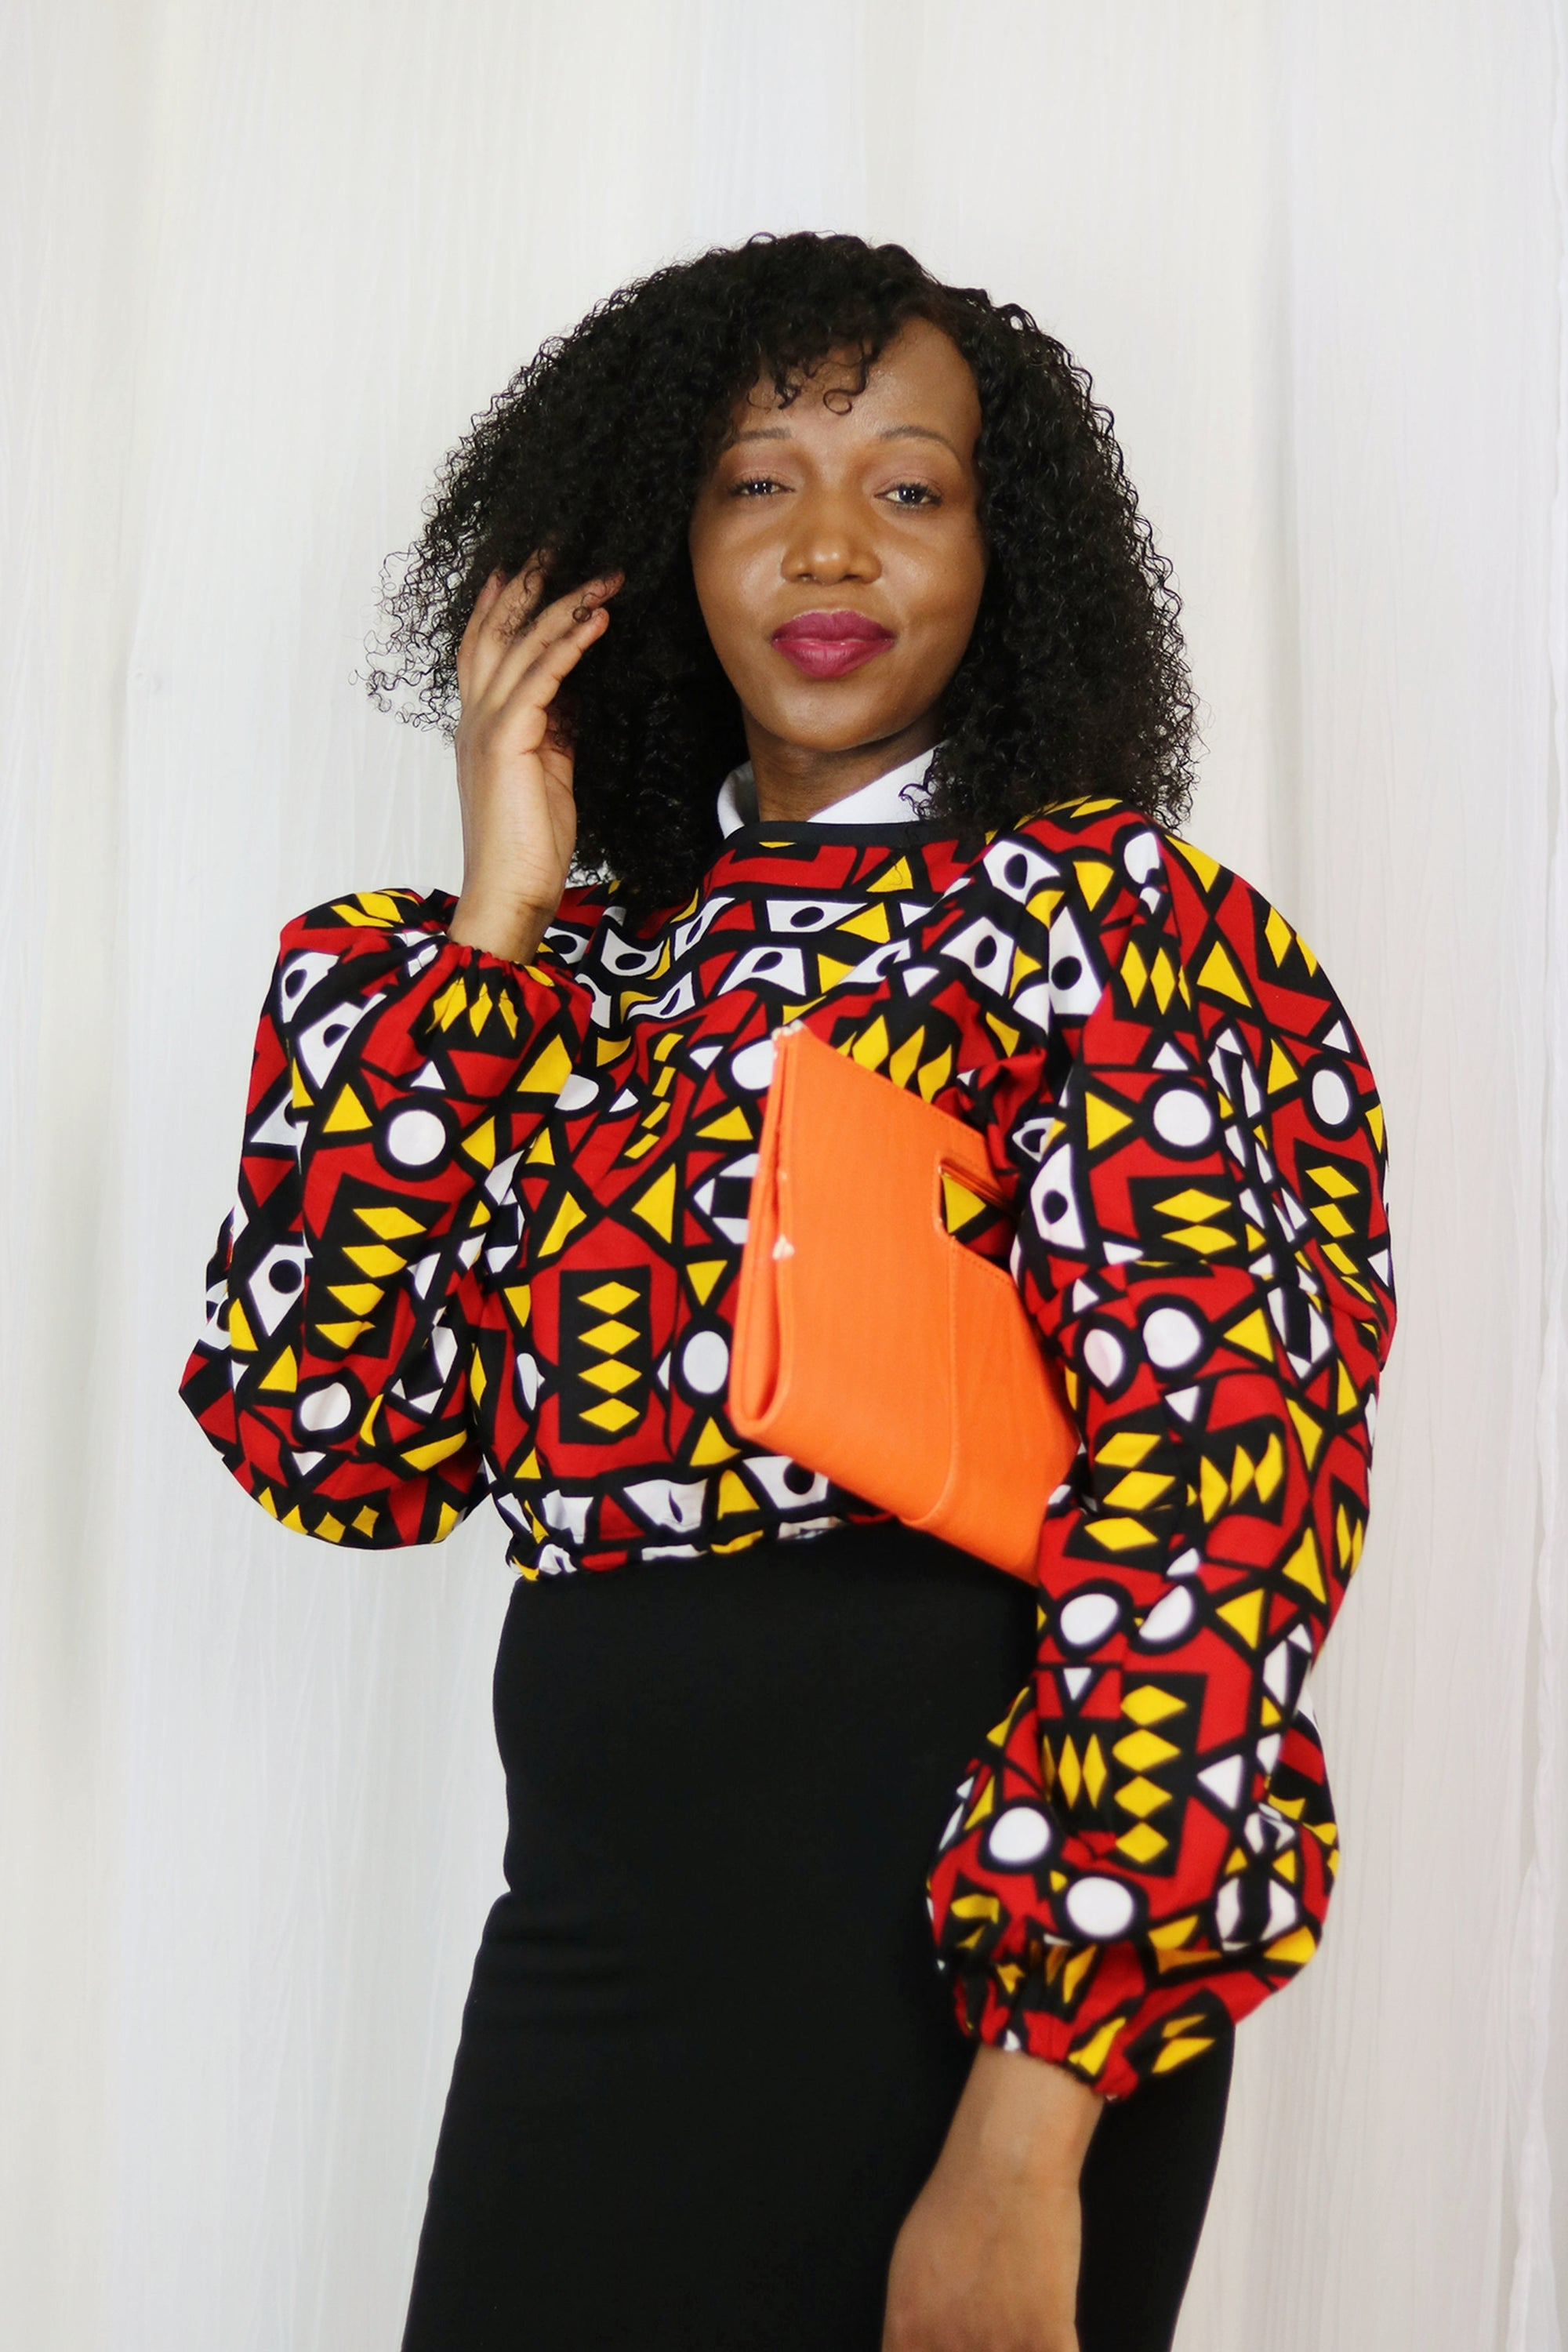 AFRICAN PRINT/ANKARA LONG SLEEVE FALL CROP TOP (ELASTIC WAISTBAND DETAIL) - RED/WHITE/BLACK/ORANGE TRIBAL PRINT